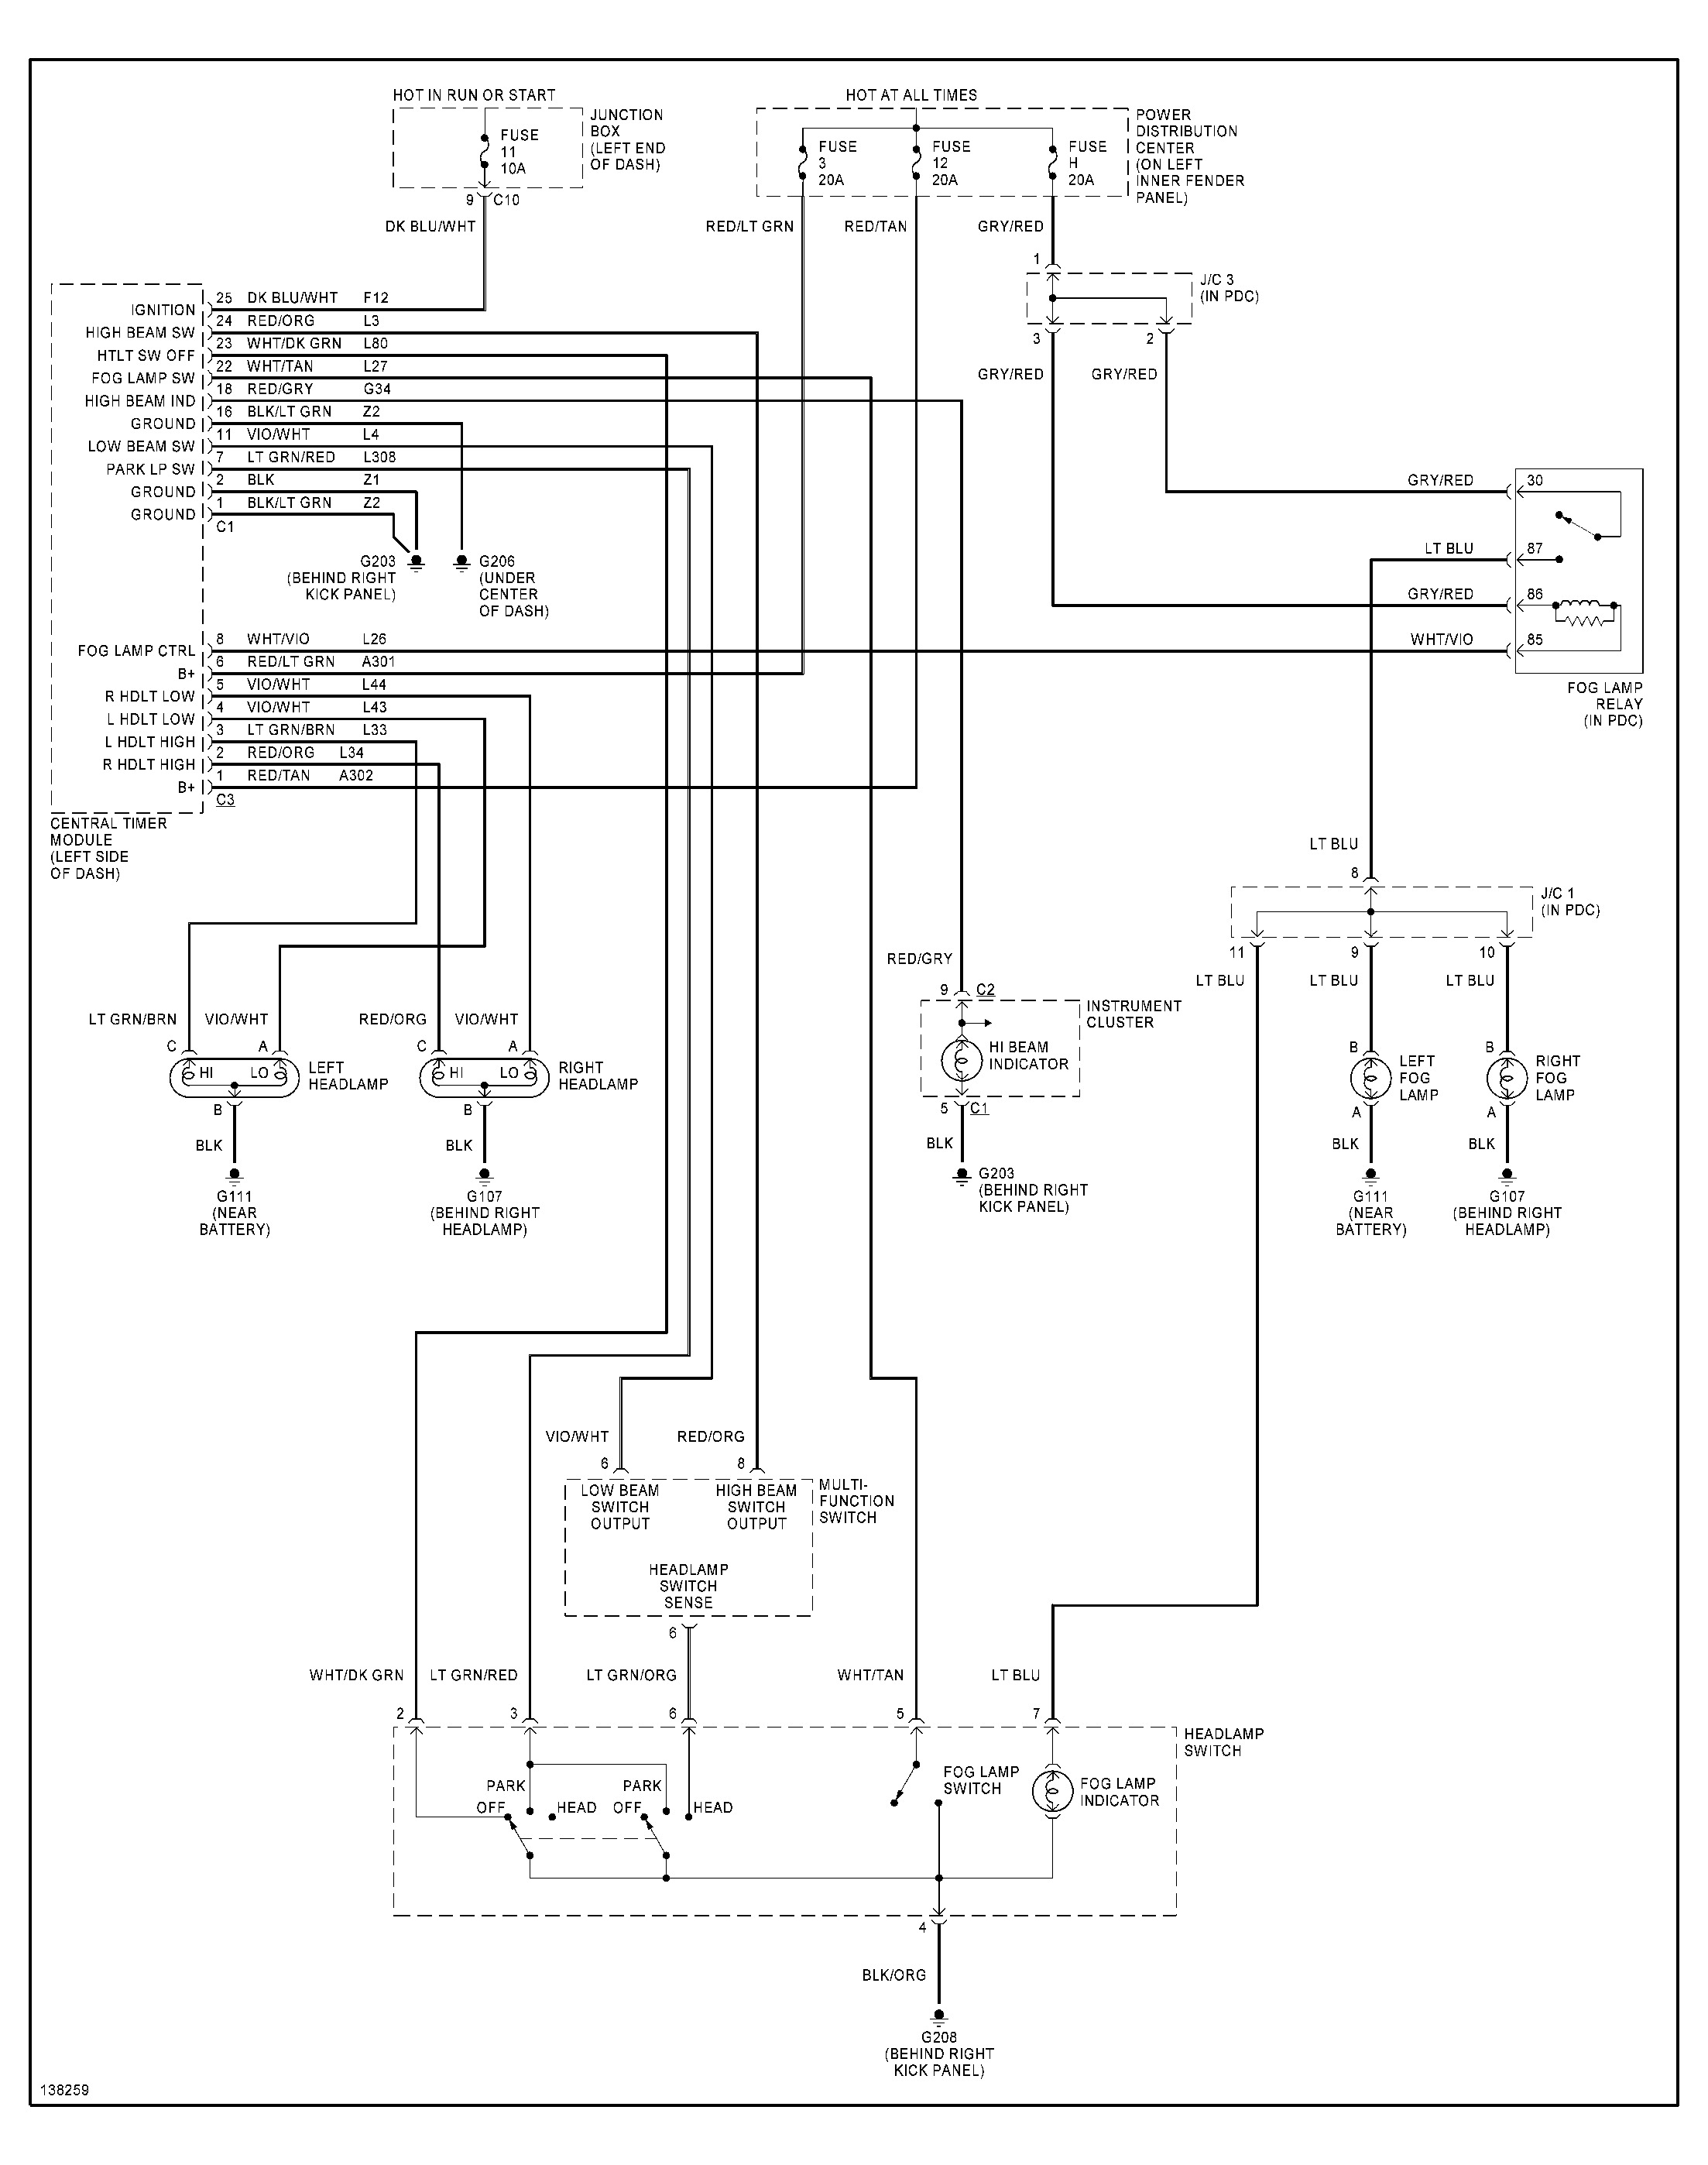 Grafik 1999 Durango Wiring Diagram Full Hd Version Pptdiagrams Bruxelles Enscene Be